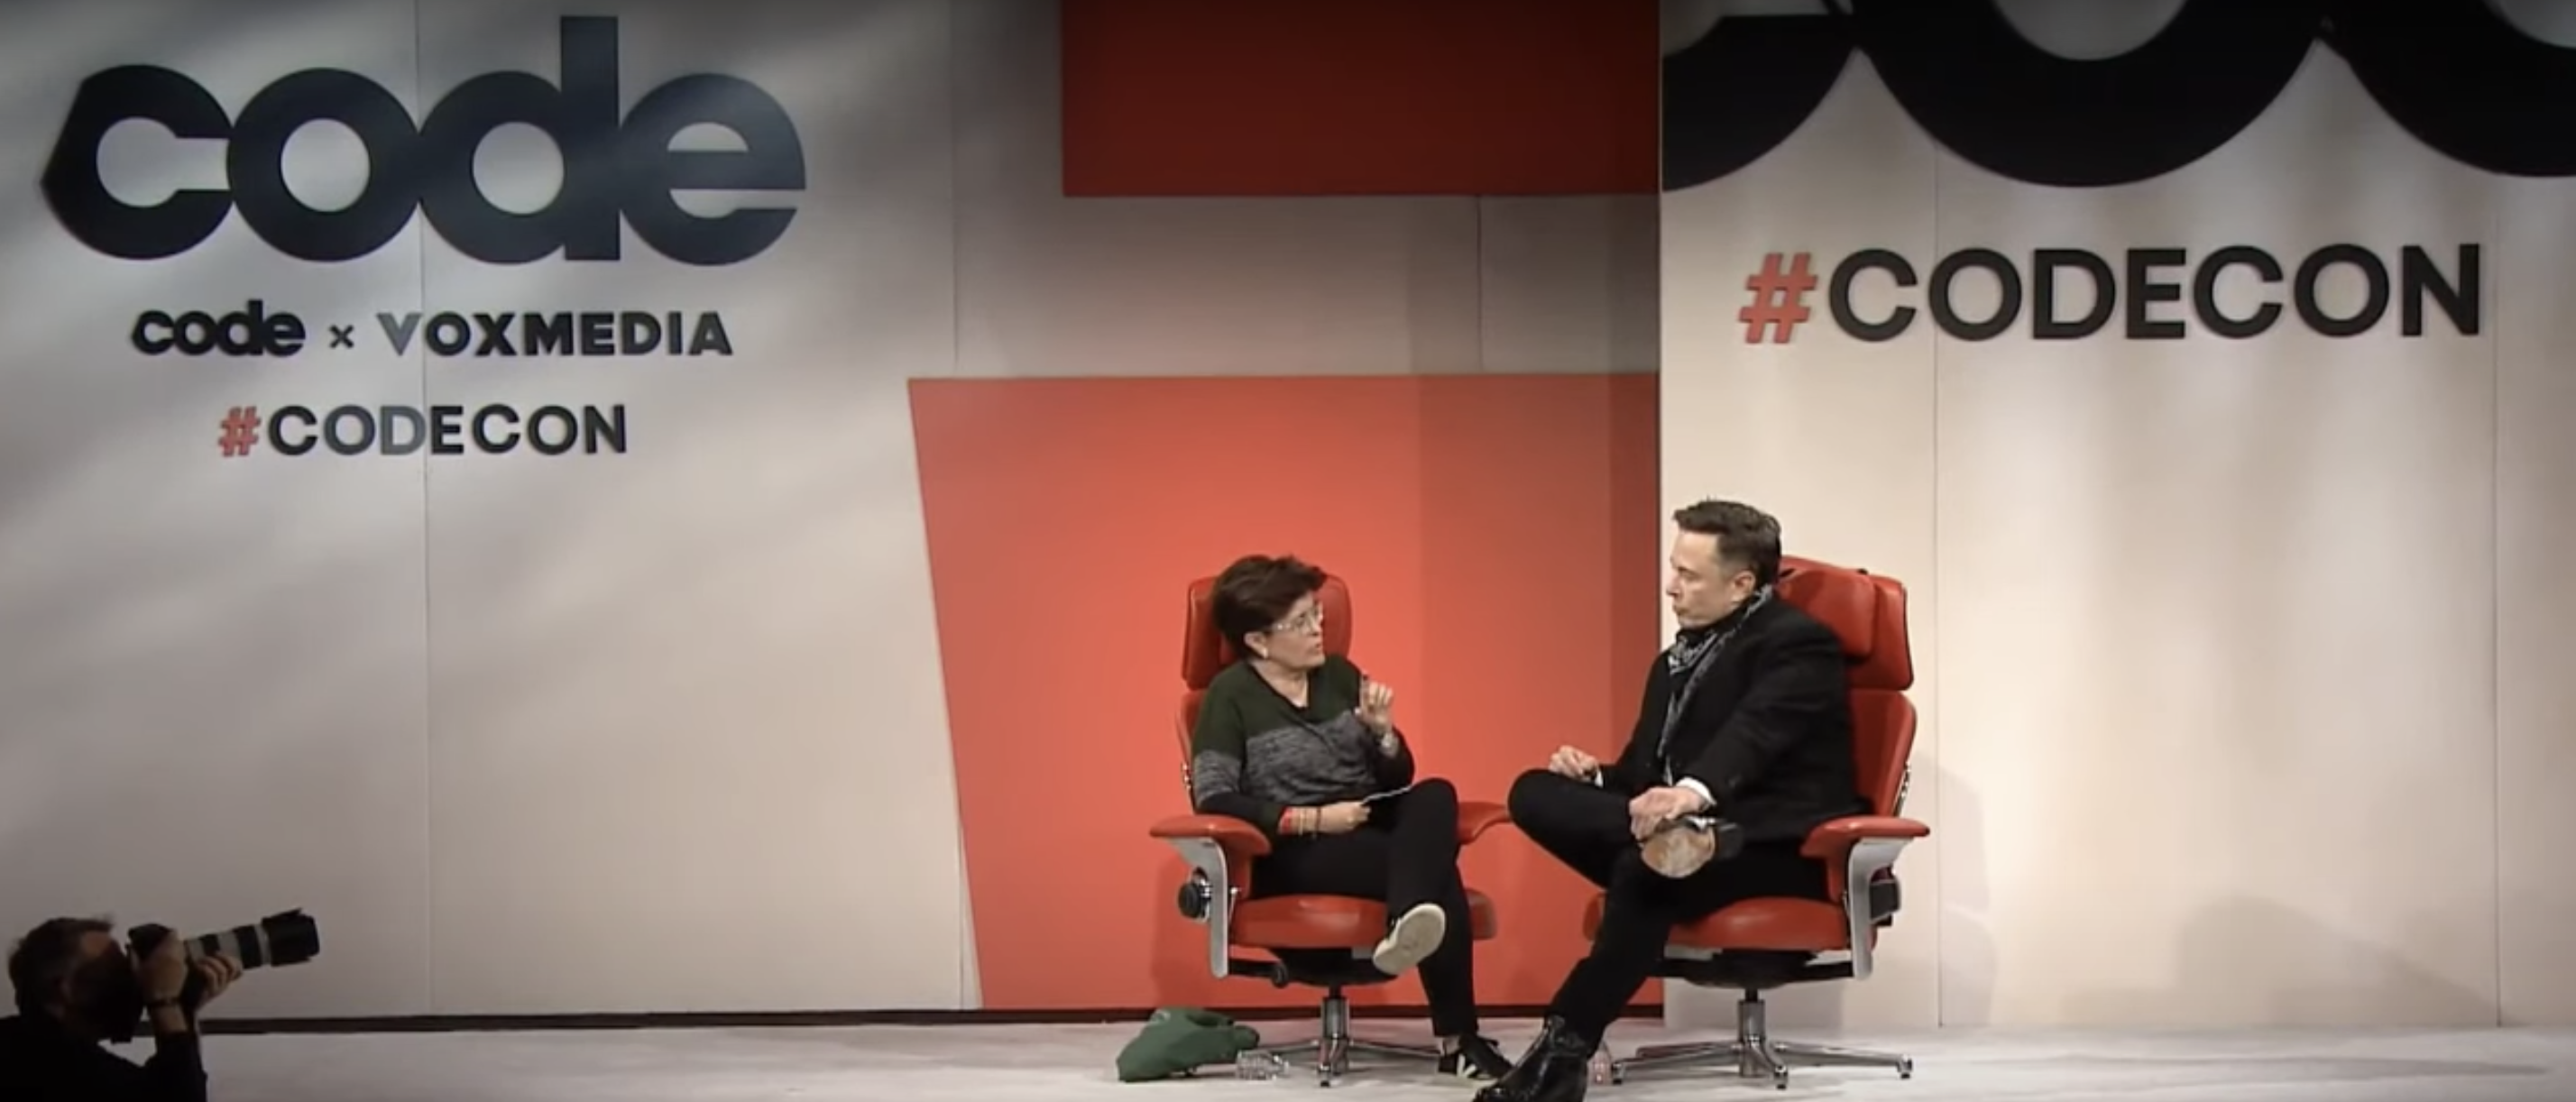 Musk tells SEC to do nothing on crypto at Codecon, Sep 2021